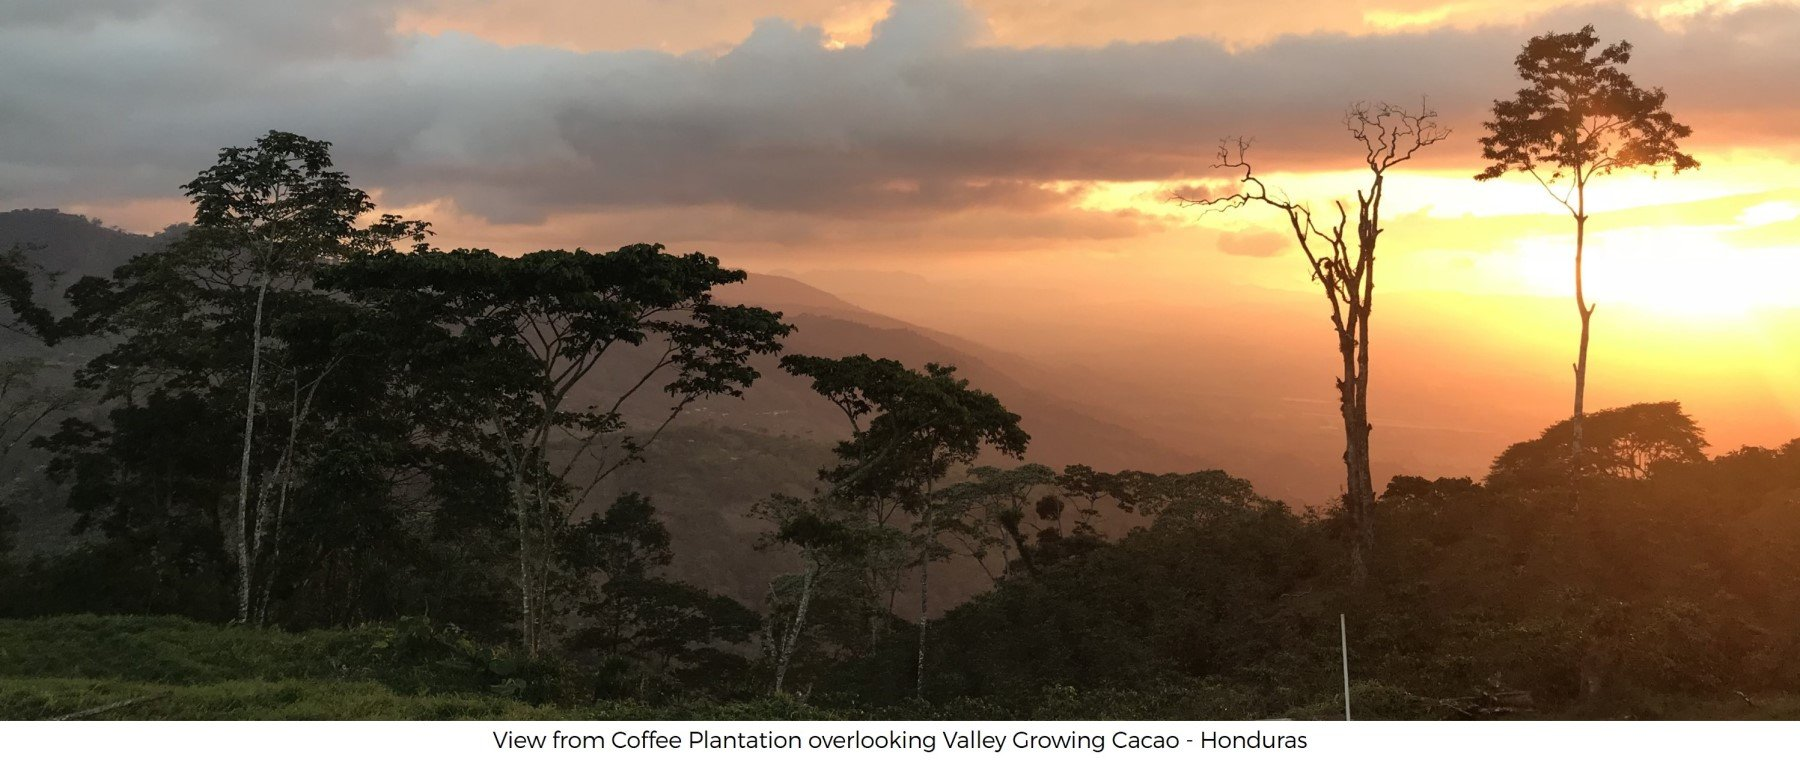 Sunset from Coffee Farm overlooking Valley farming Cacao Honduras